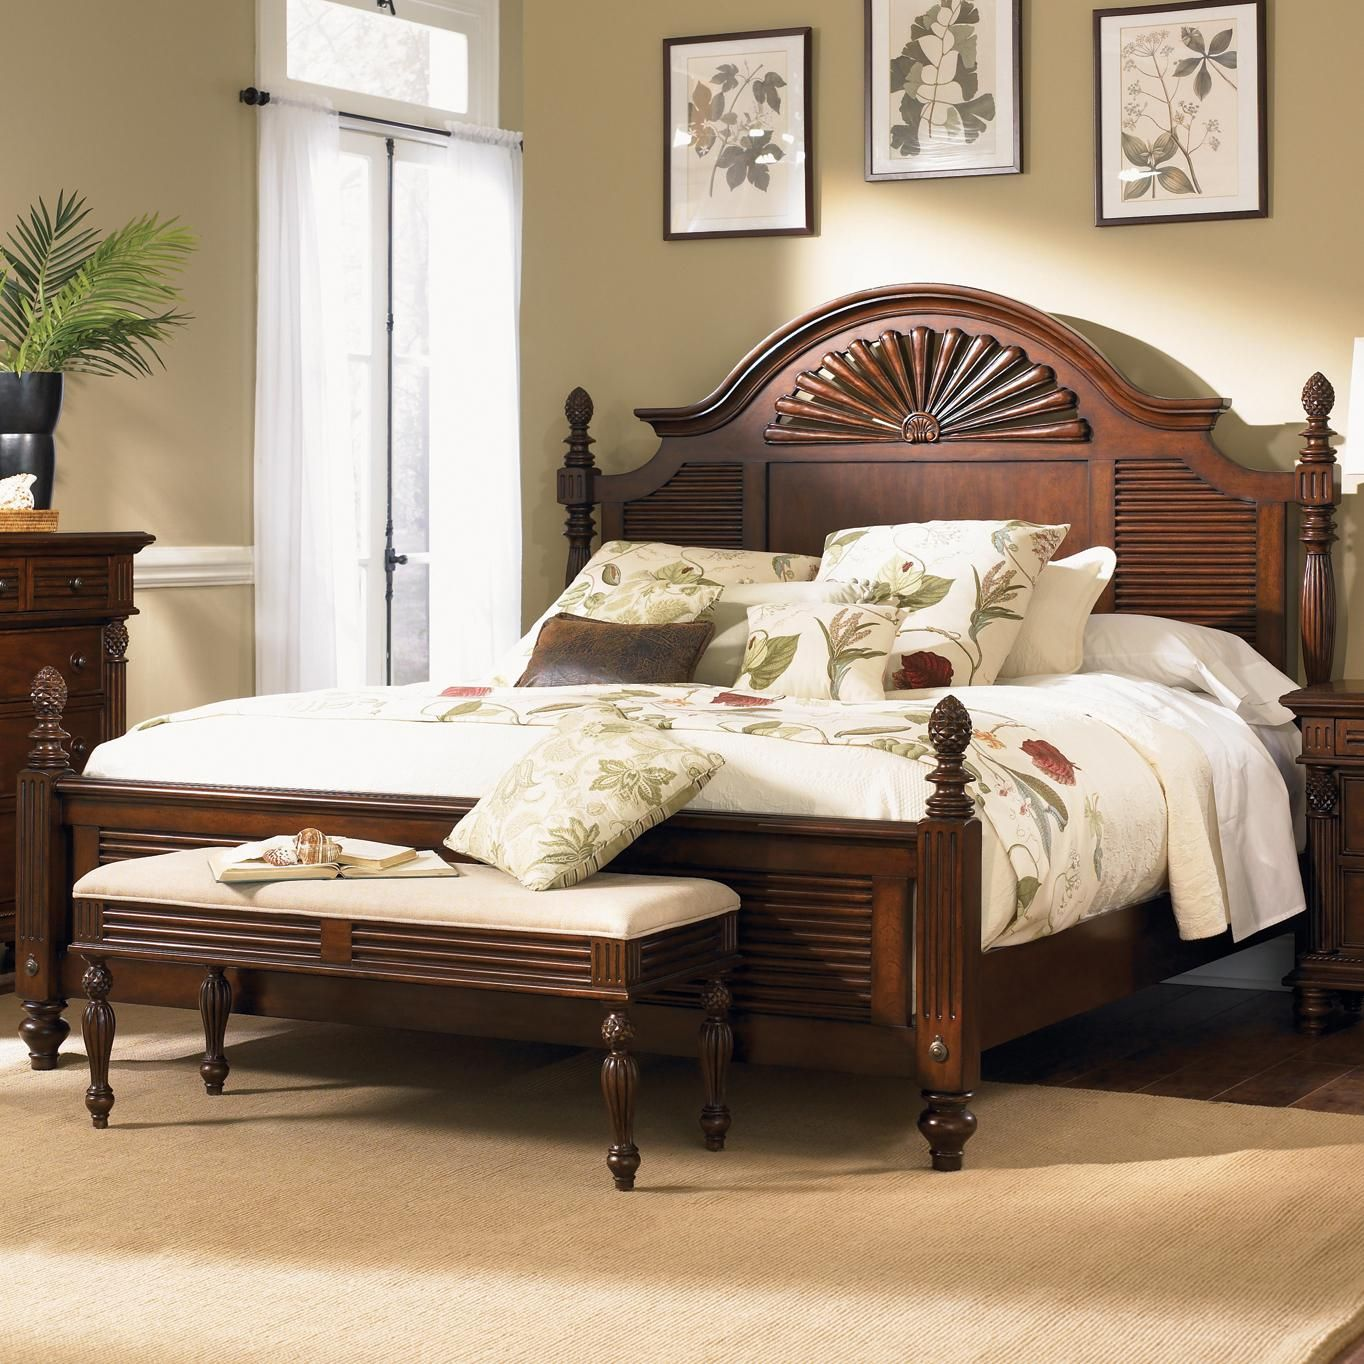 Liberty Furniture Bedroom Sets Royal Landing King Poster Bed With Pineapple Accents By Liberty